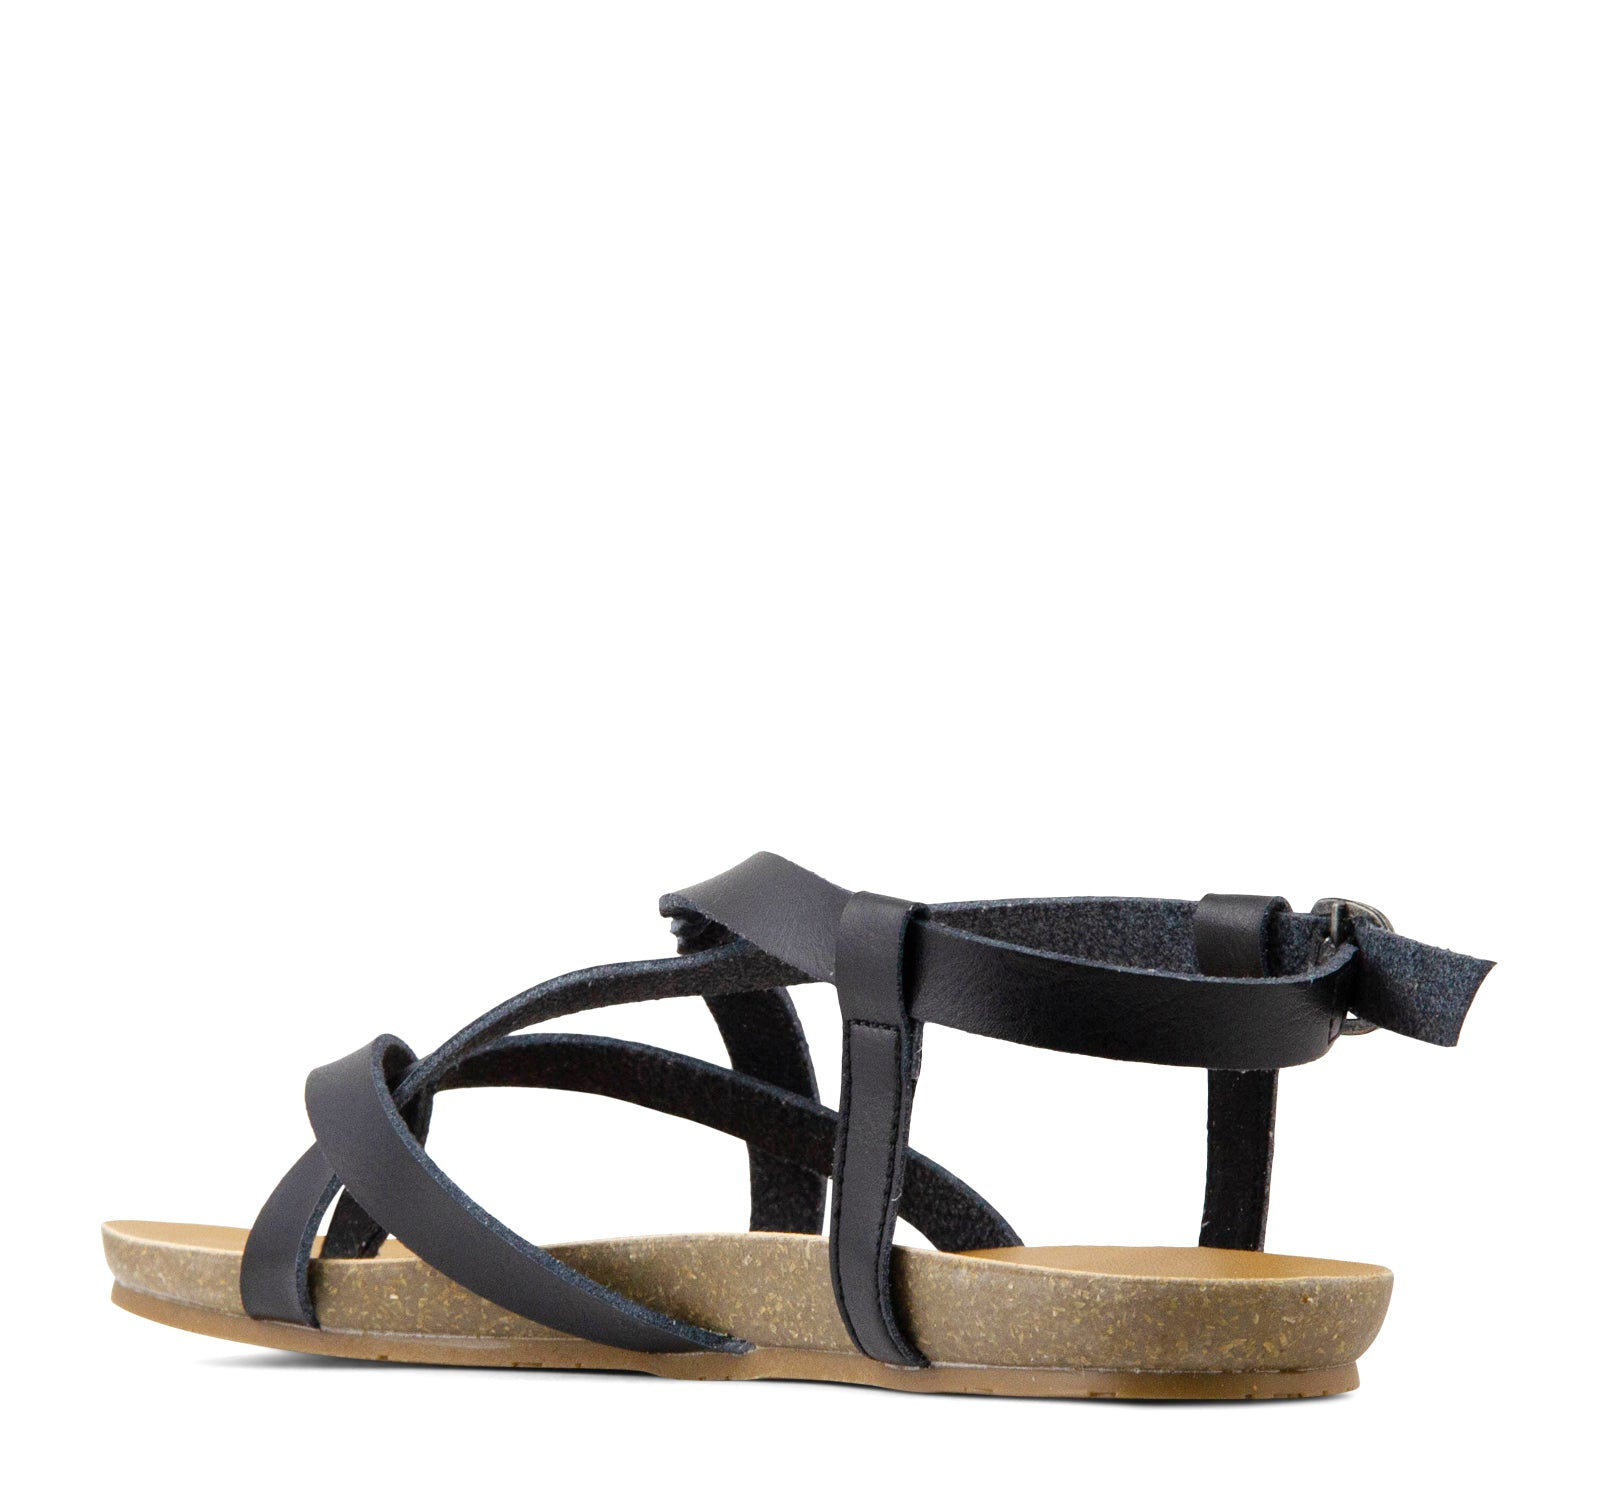 0d7d0cde9be7 ... Blowfish Granola-B Women s Sandal in Black - Blowfish Malibu - On The  EDGE